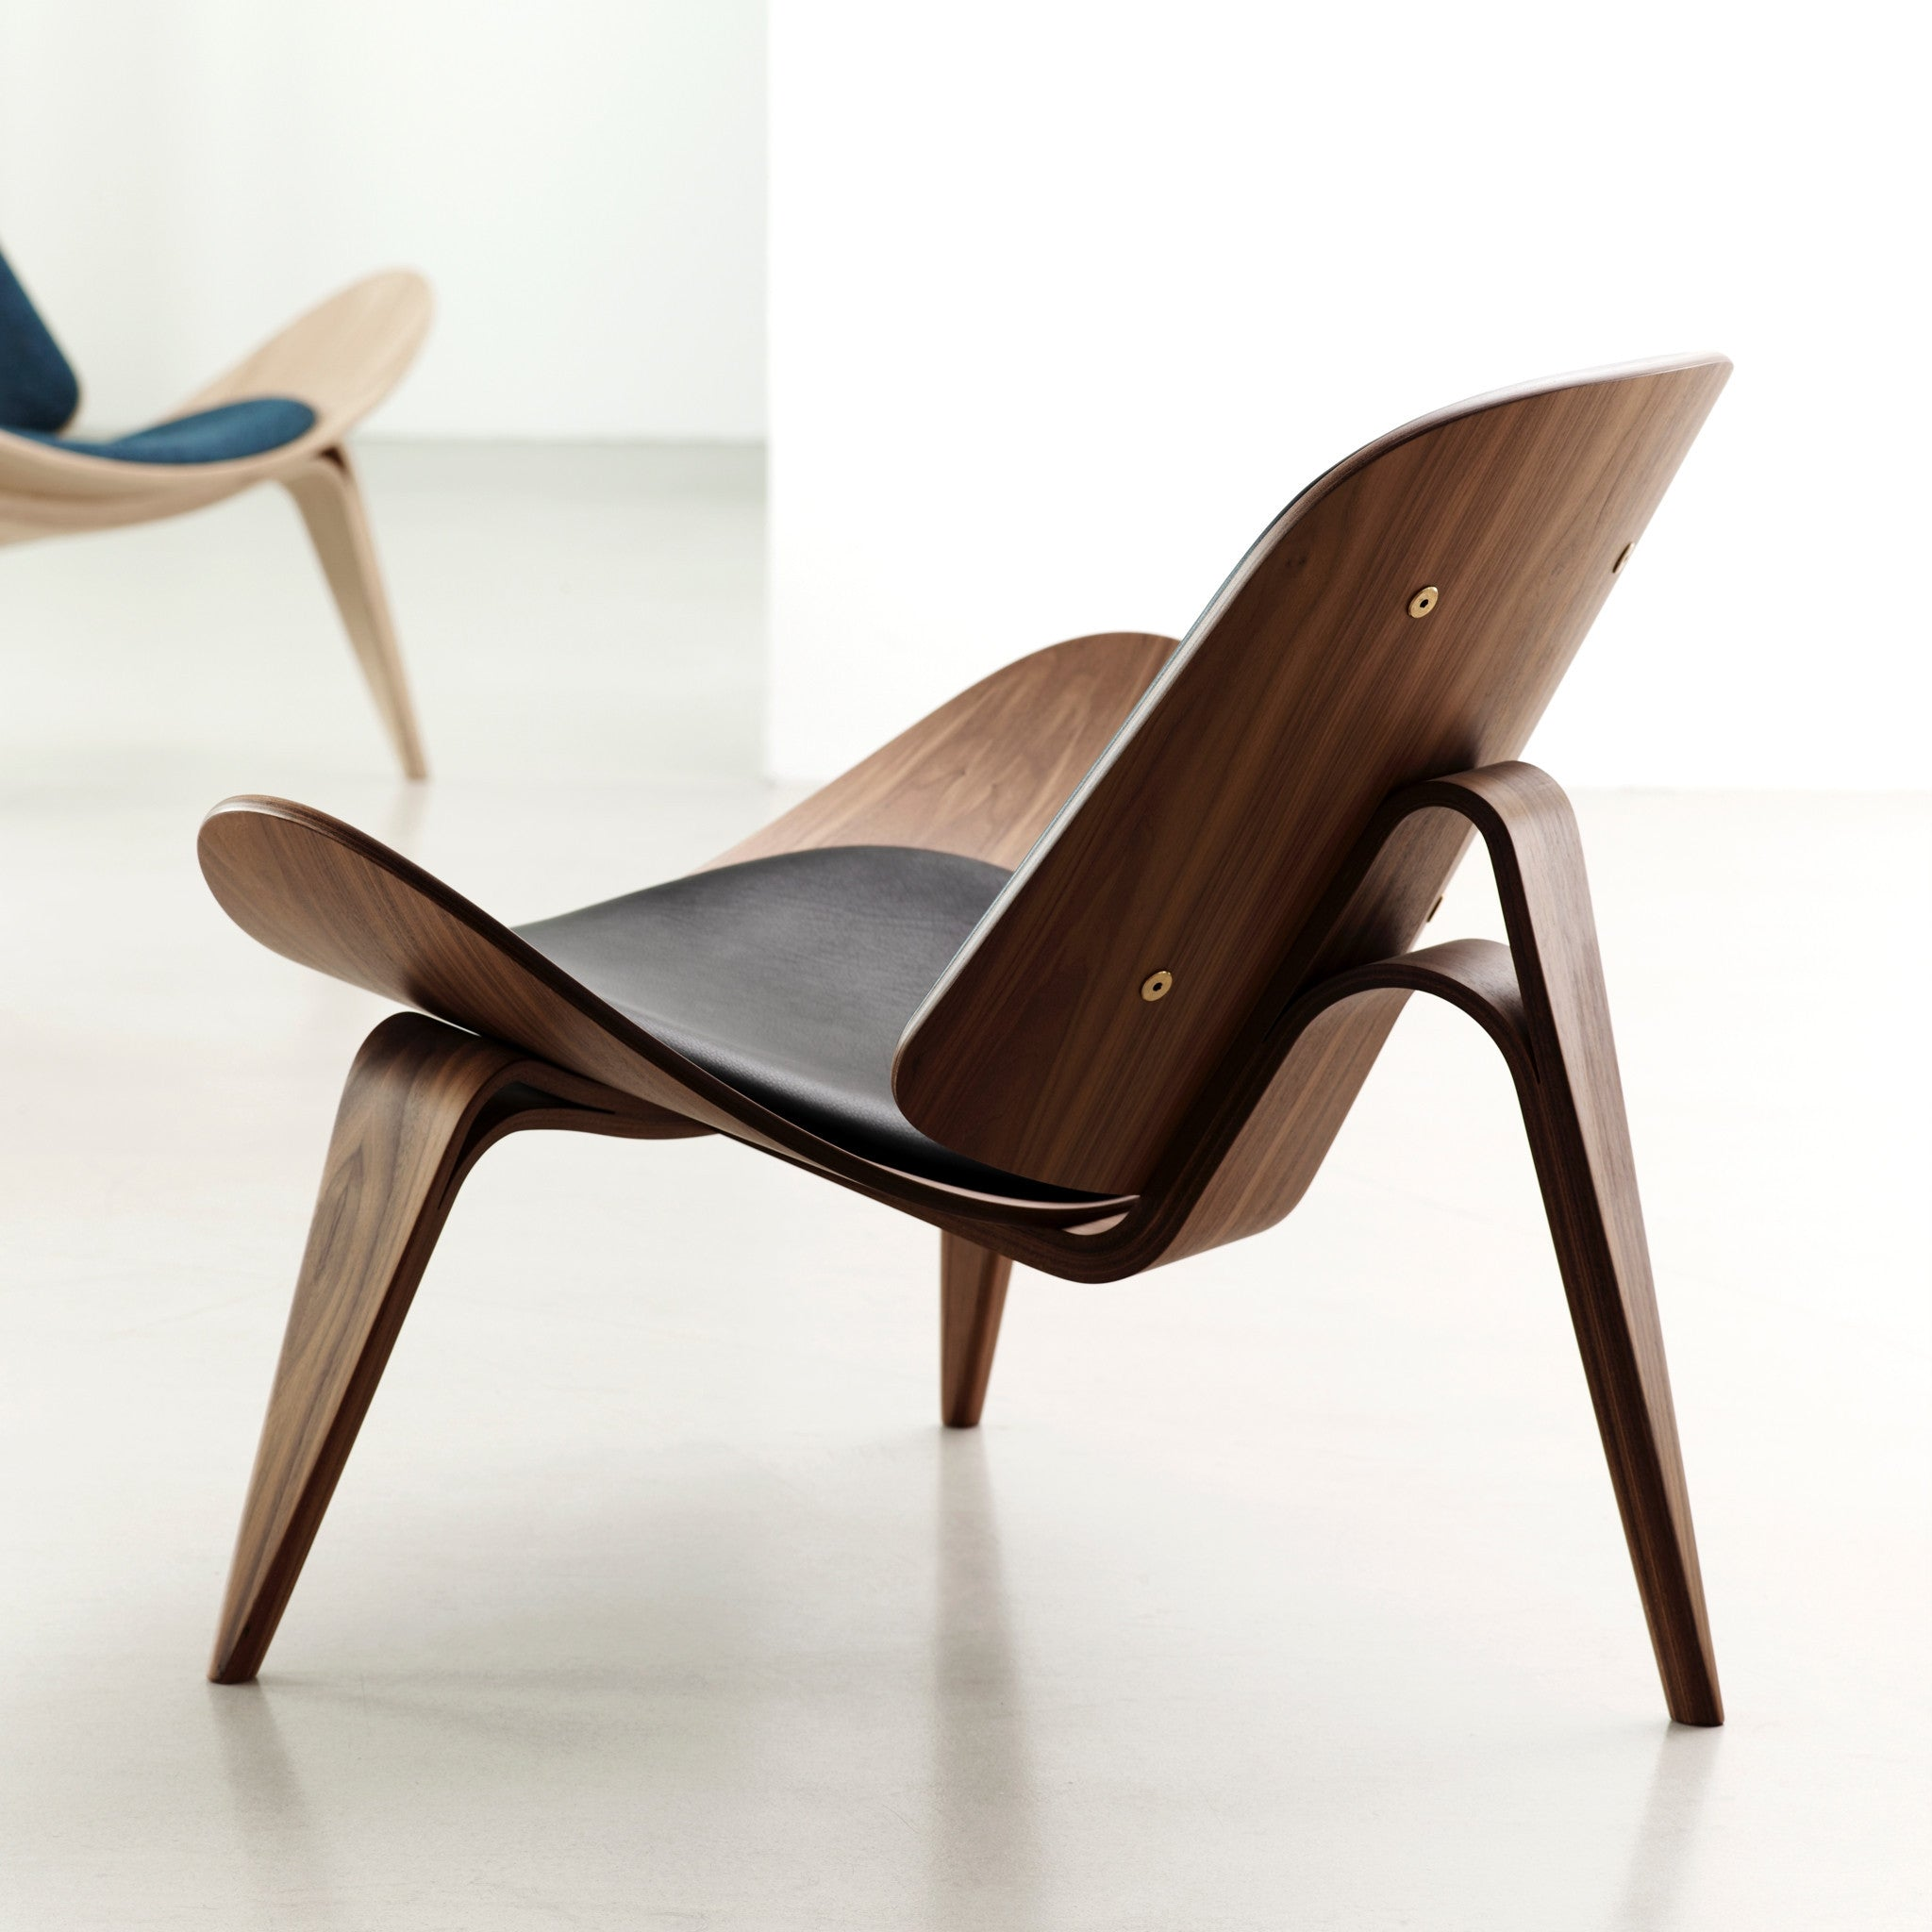 sharp shell chair lounge within living resmode pd design reach chairs hei